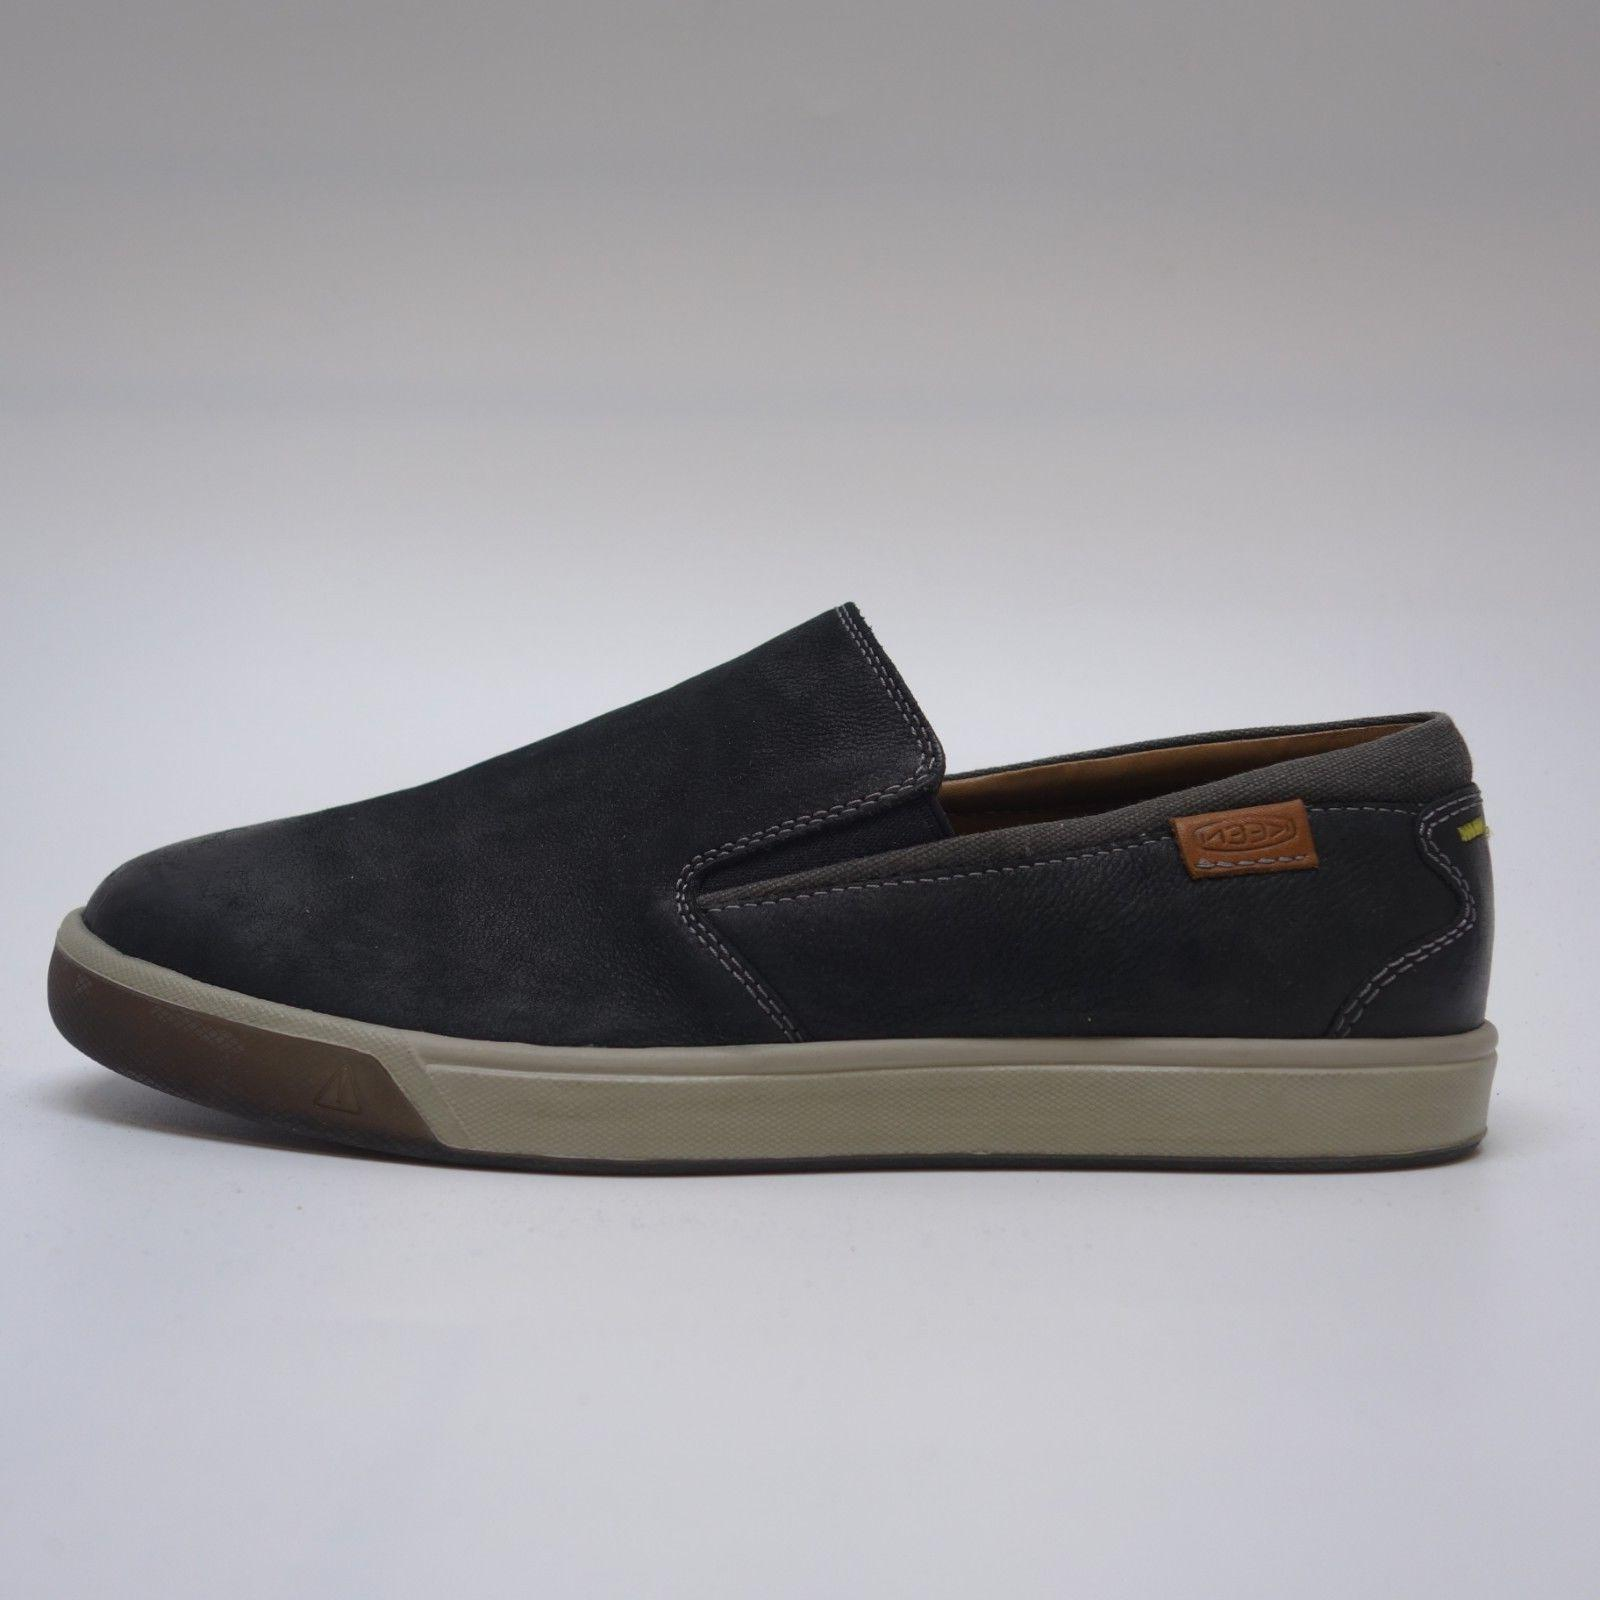 New Brown Black On Leather Casual